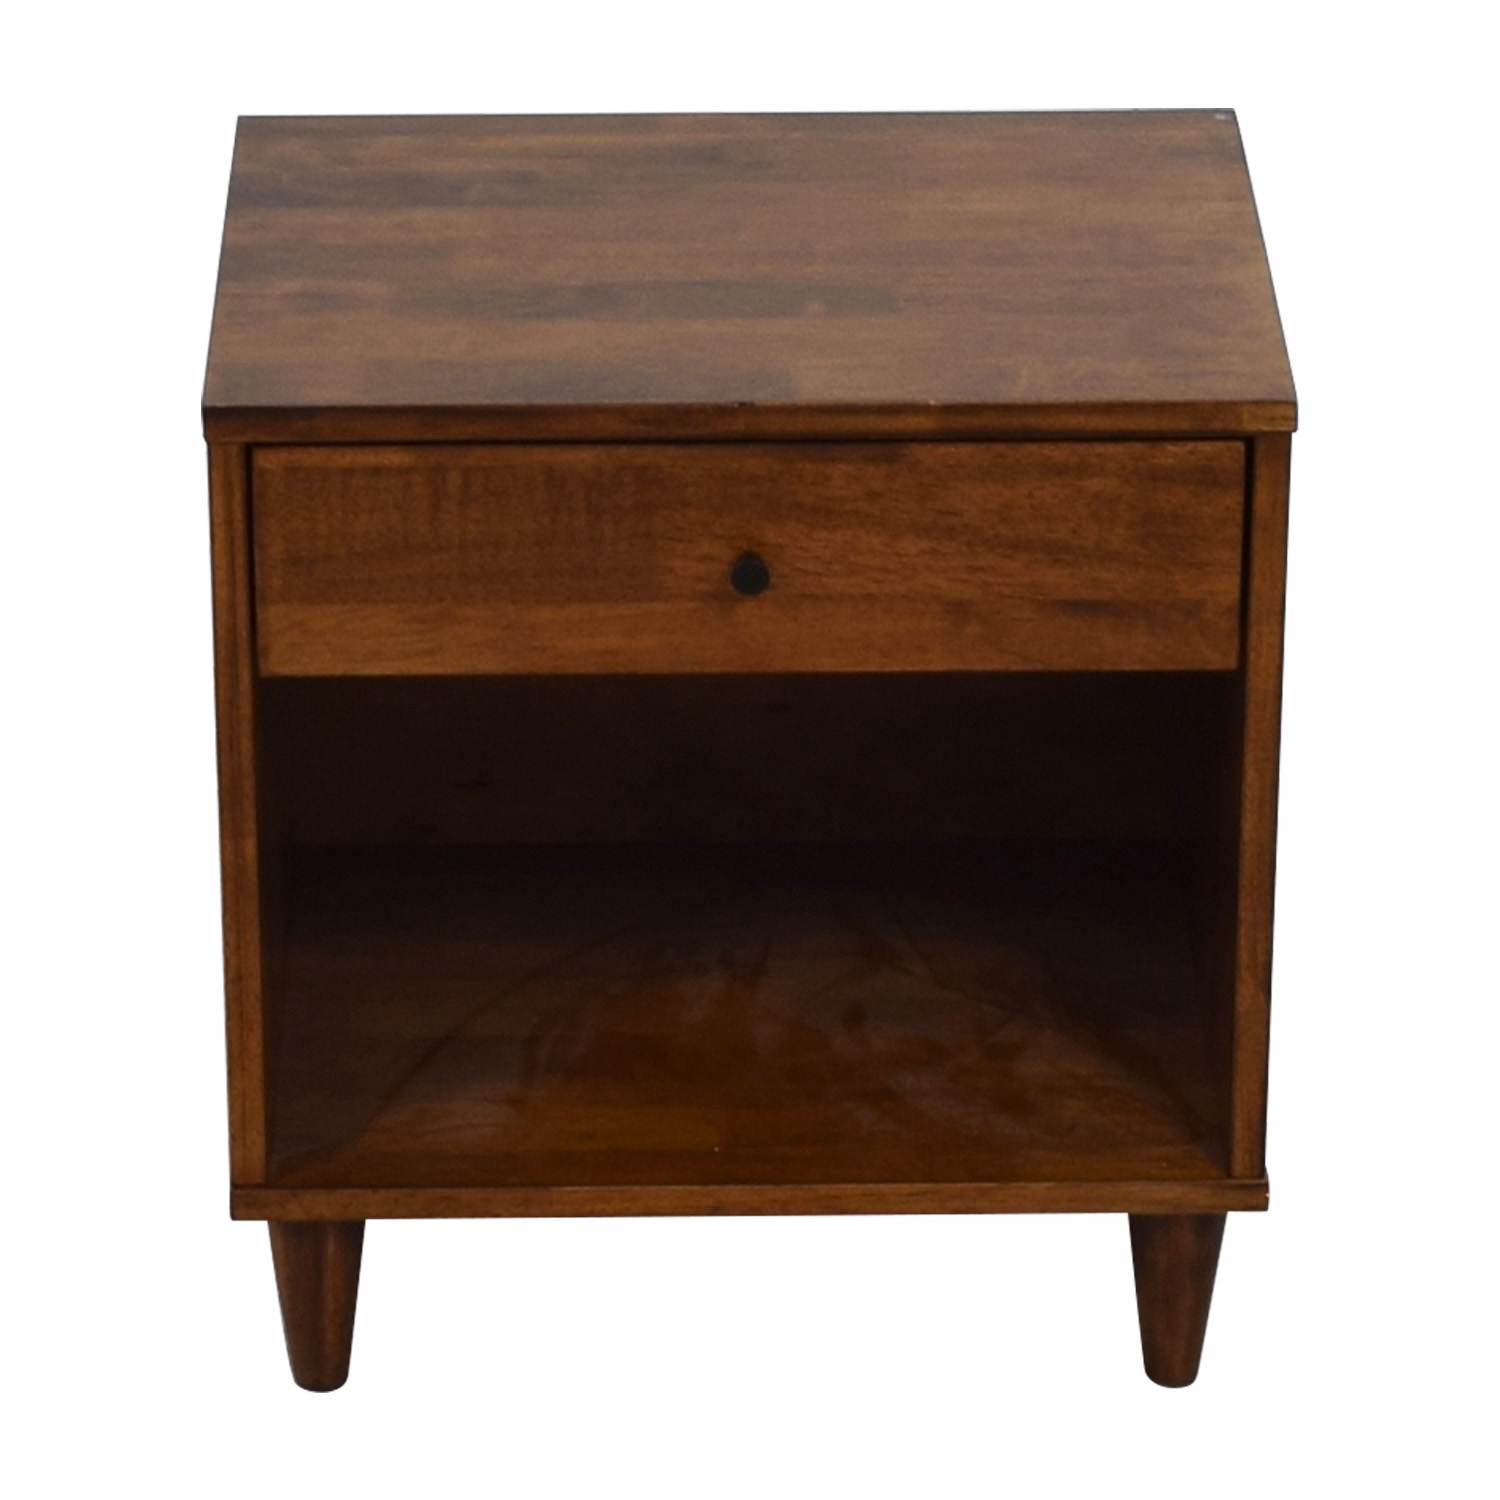 Vilas Vilas Tobacco Rubberwood Single Drawer Nightstand dimensions